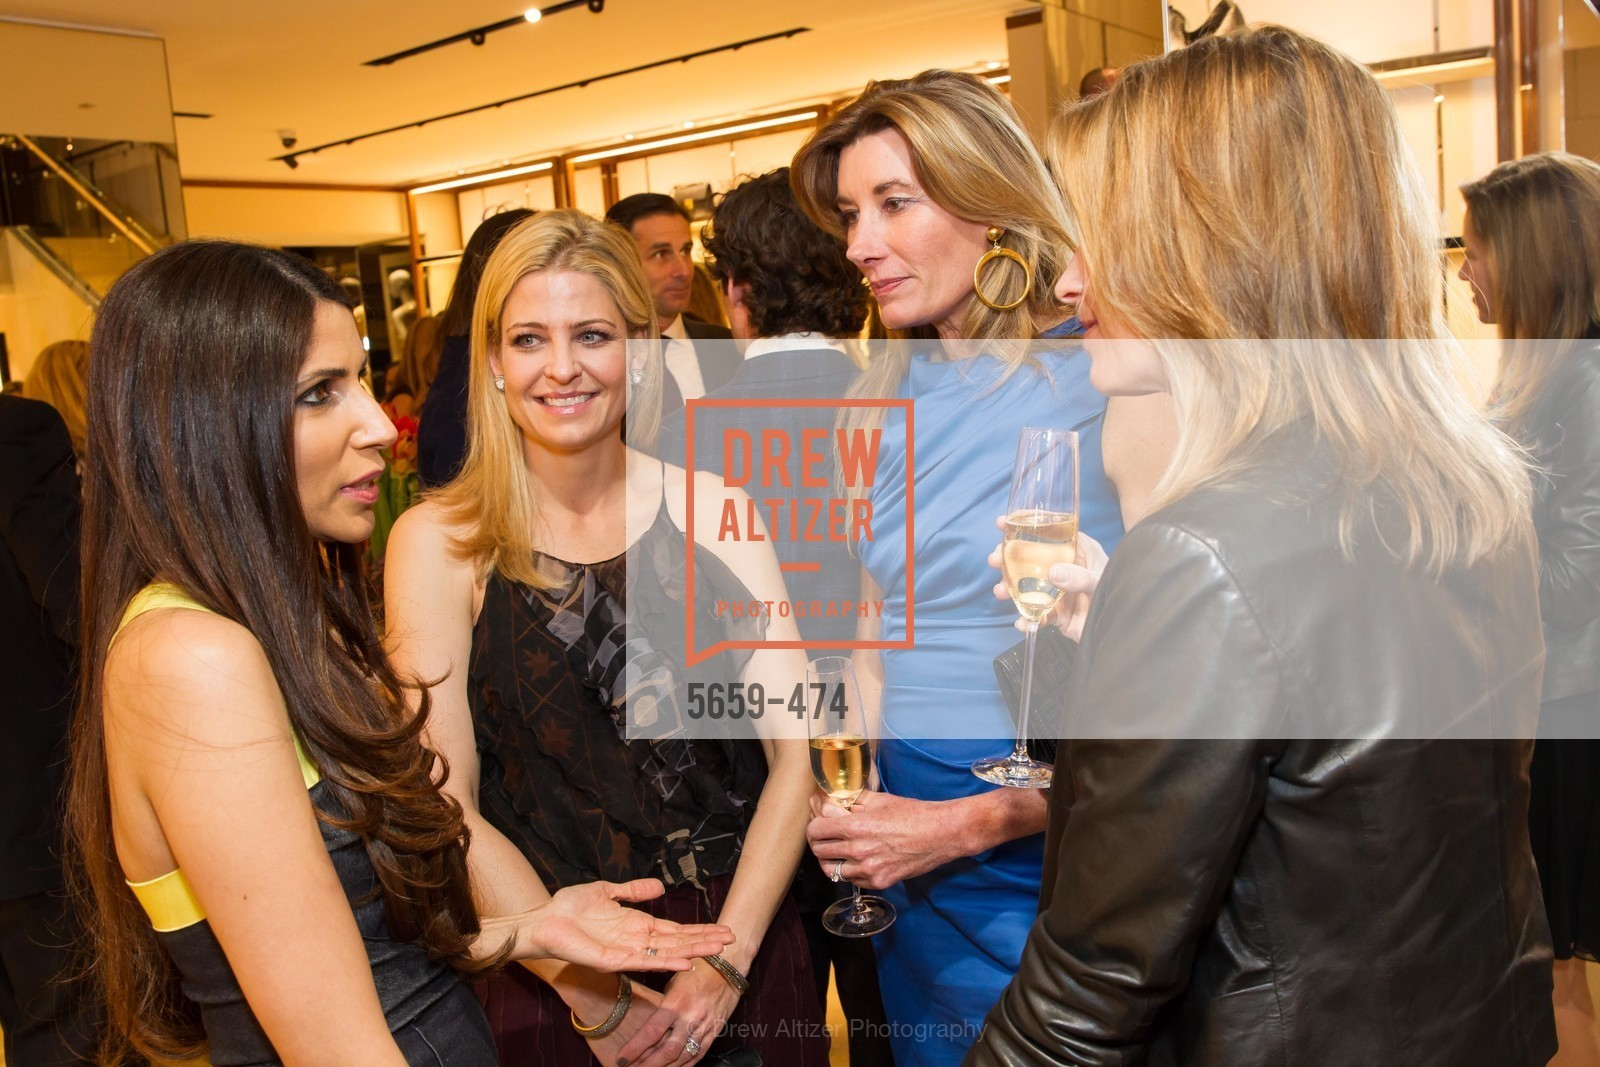 Sobia Shaikh, Jenna Hunt, Susan Dunlevy, SALVATORE FERRAGAMO San Francisco Re-Opening, US. US, January 23rd, 2014,Drew Altizer, Drew Altizer Photography, full-service agency, private events, San Francisco photographer, photographer california